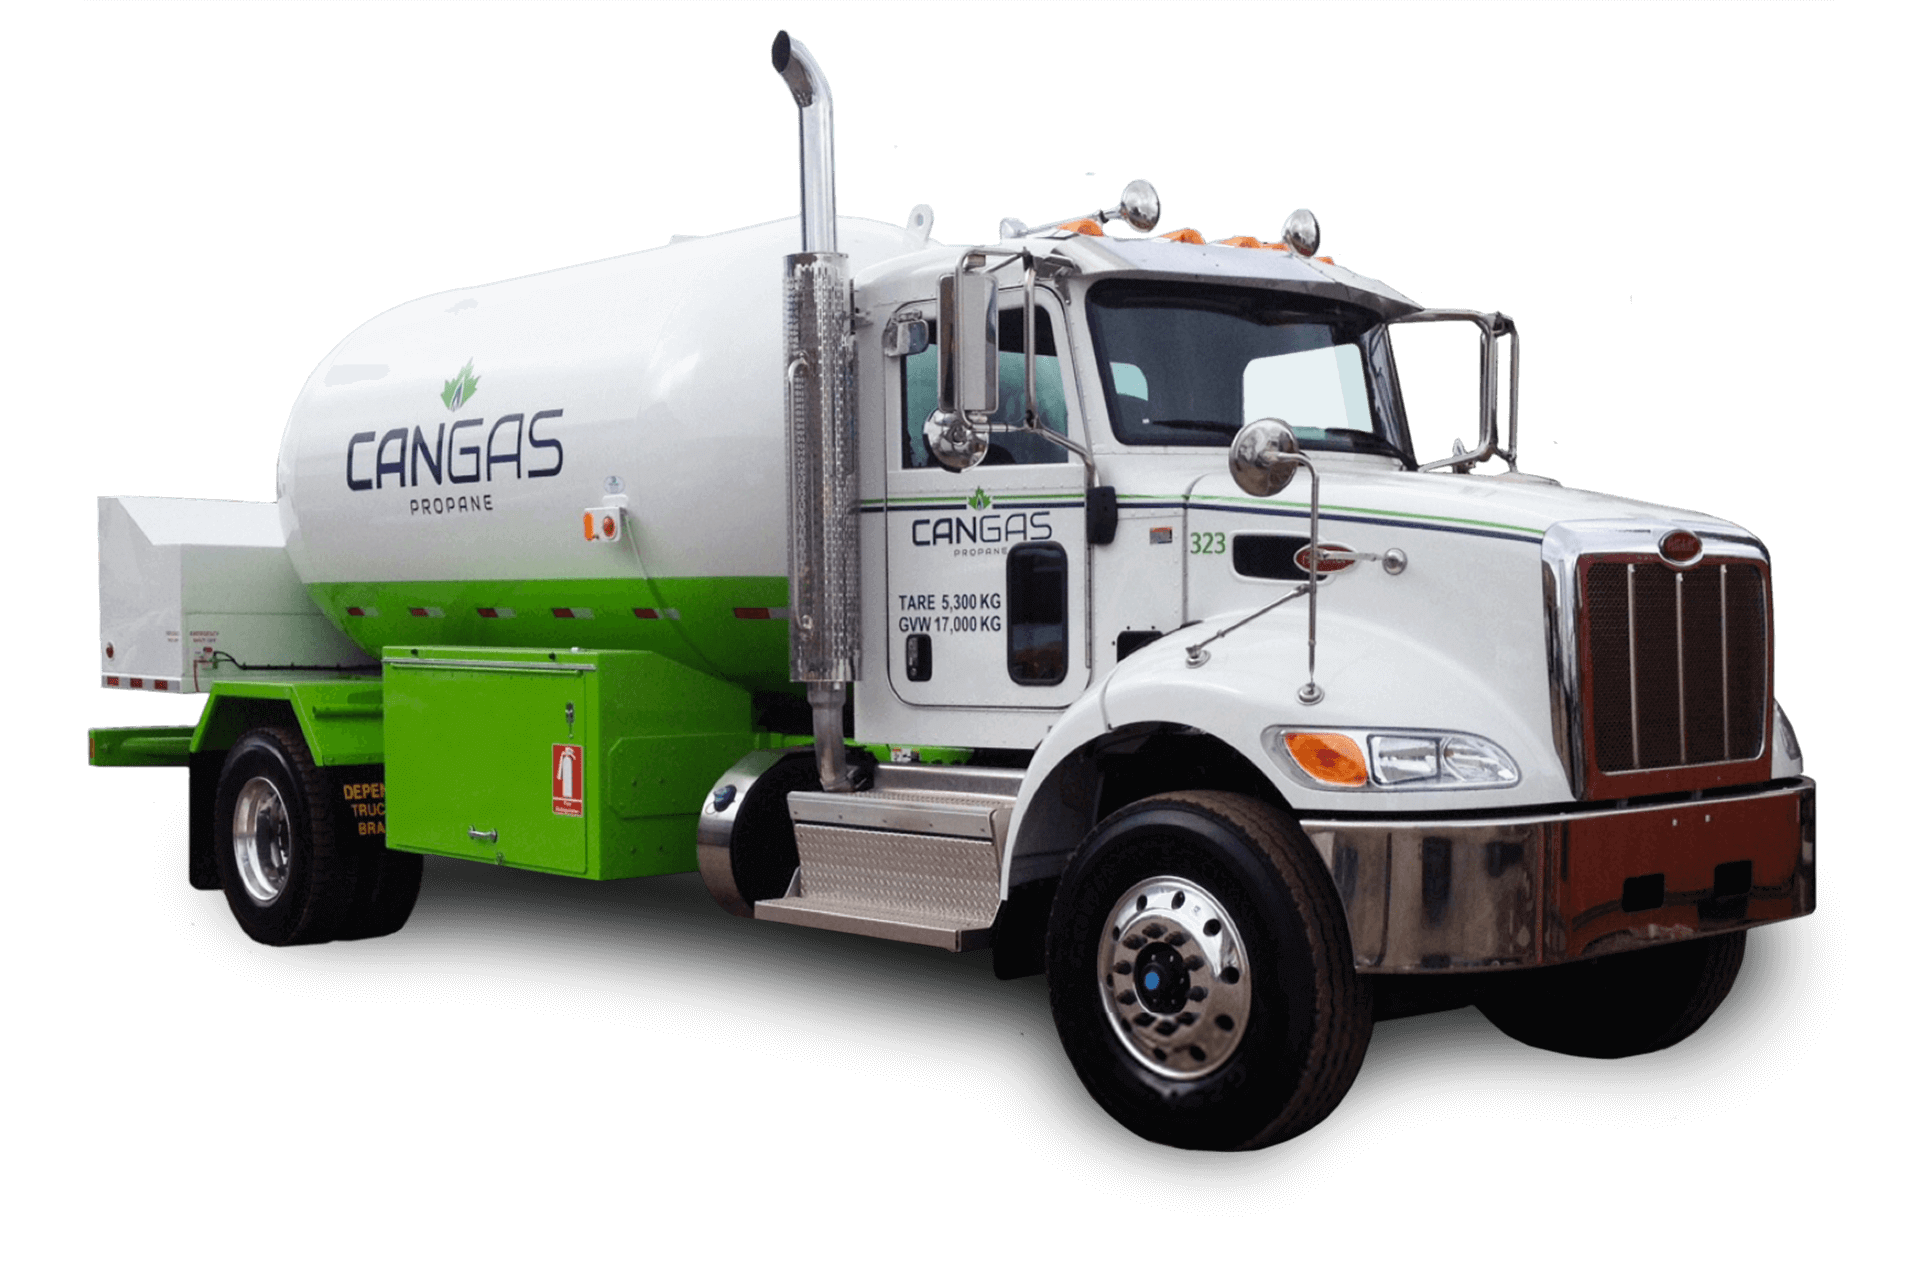 CanGas truck - Propane delivery